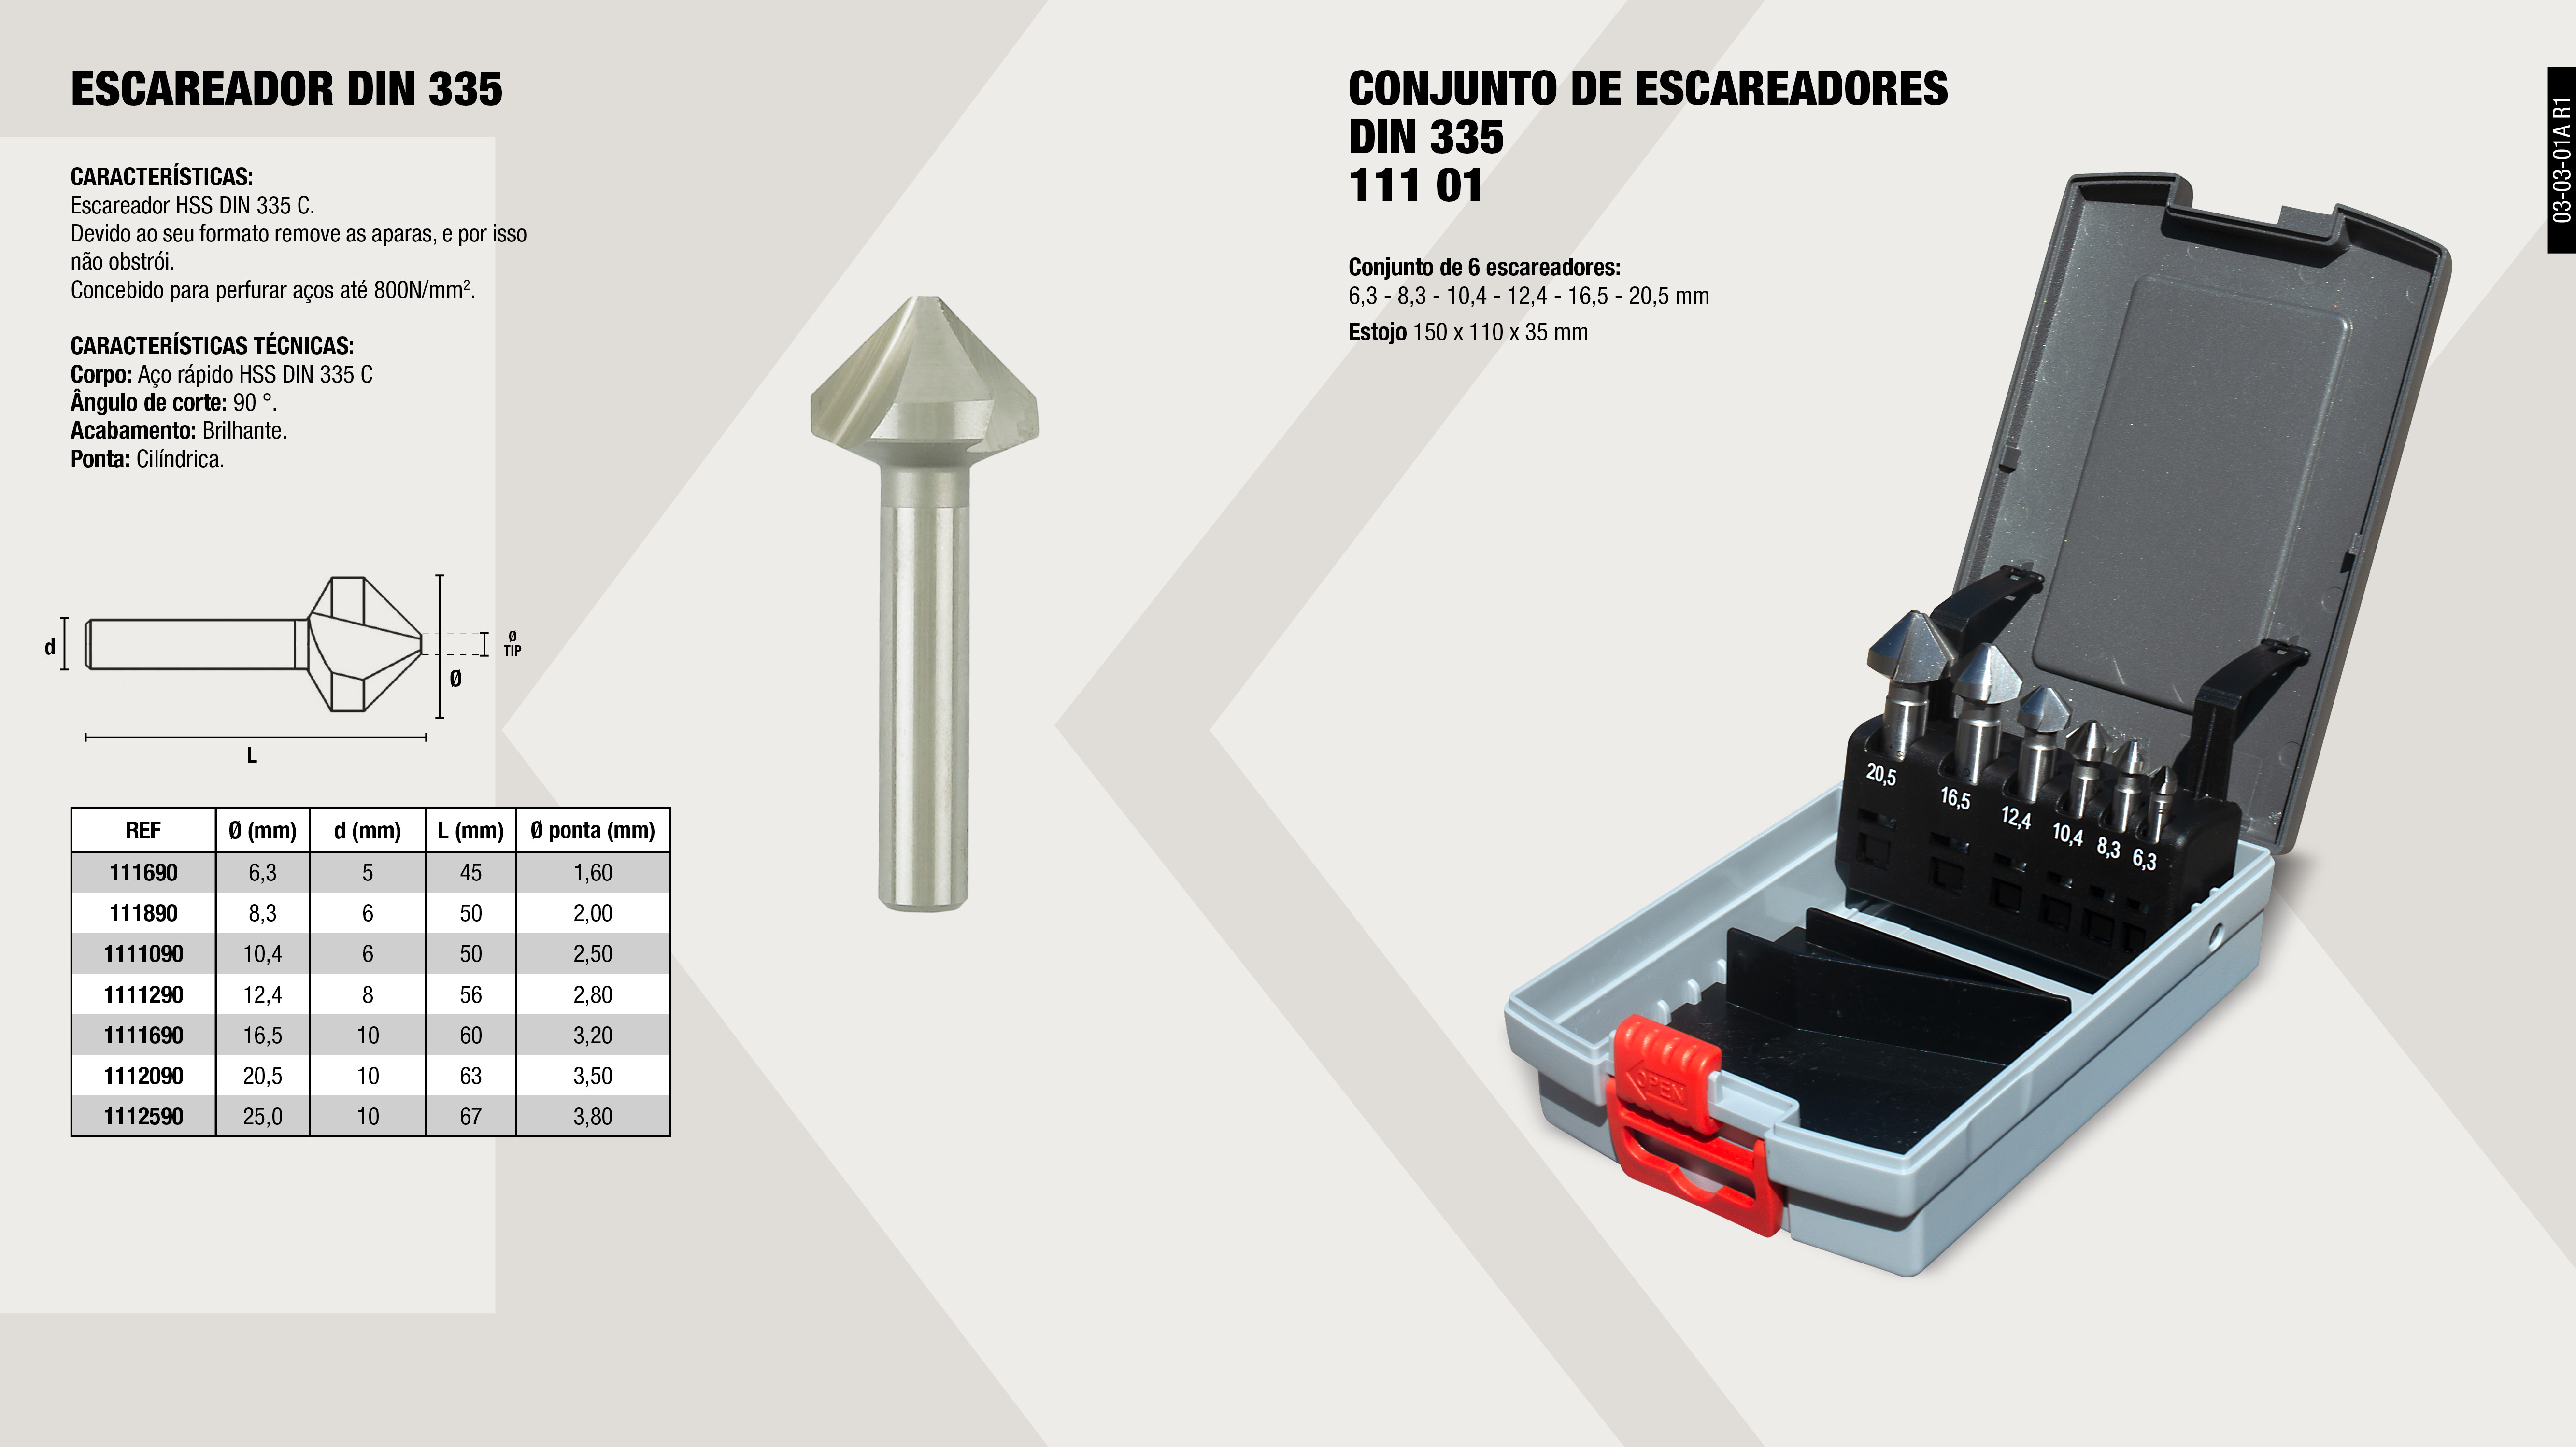 CONJUNTO DE ESCAREADOR DIN 335                              ,